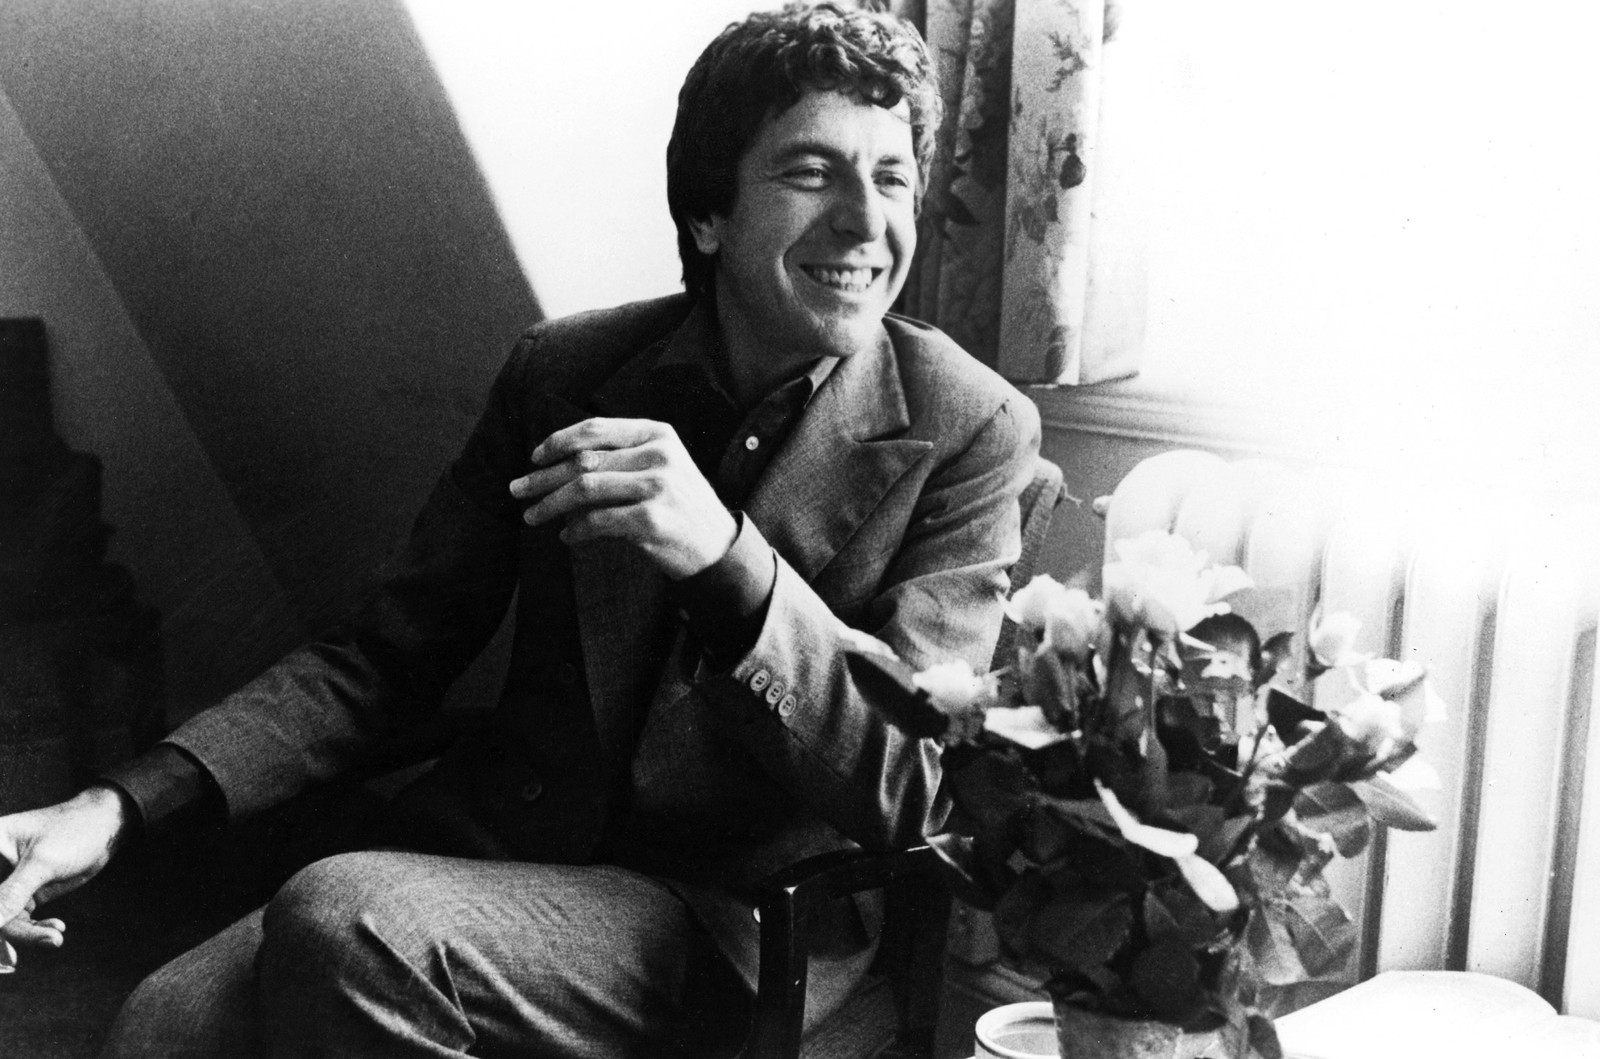 Leonard Cohen photographed in the 1960s.    Courtesy Everett Collection